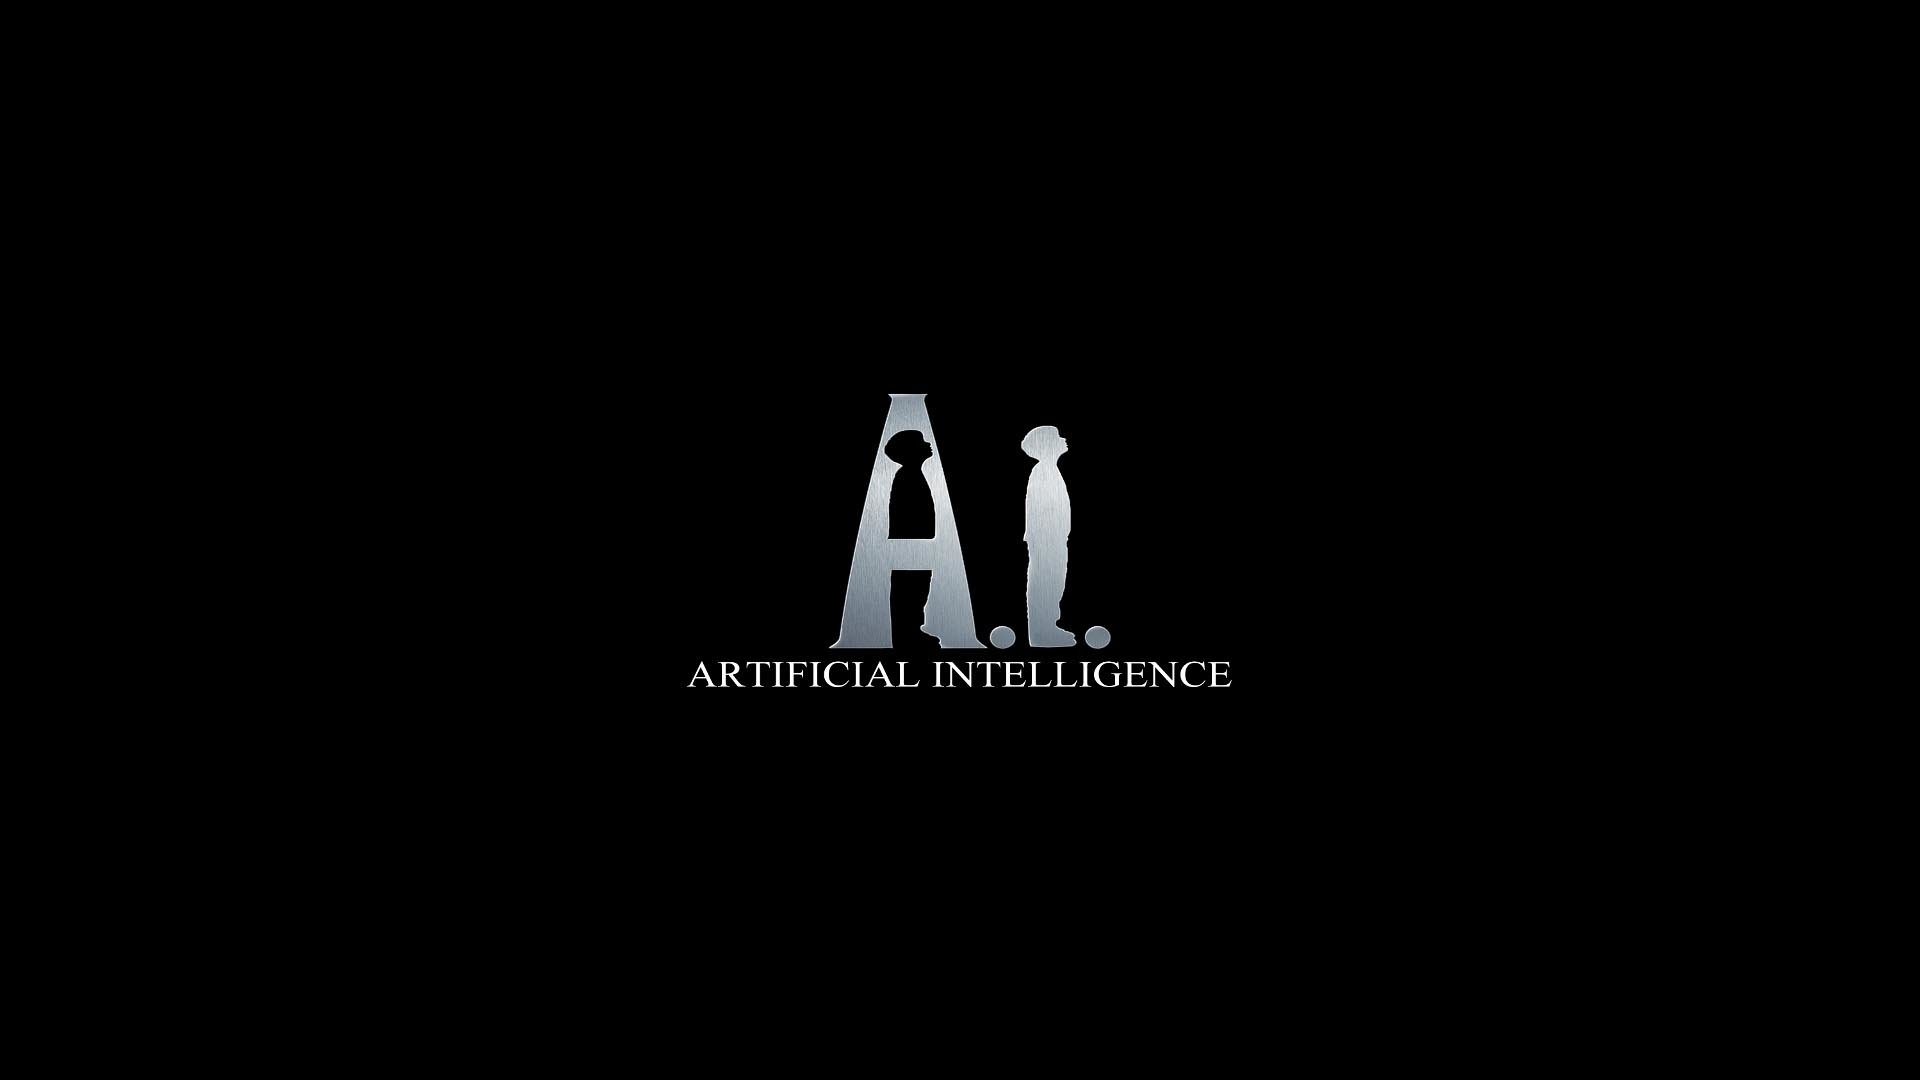 A.I. Artificial Intelligence HD Wallpaper